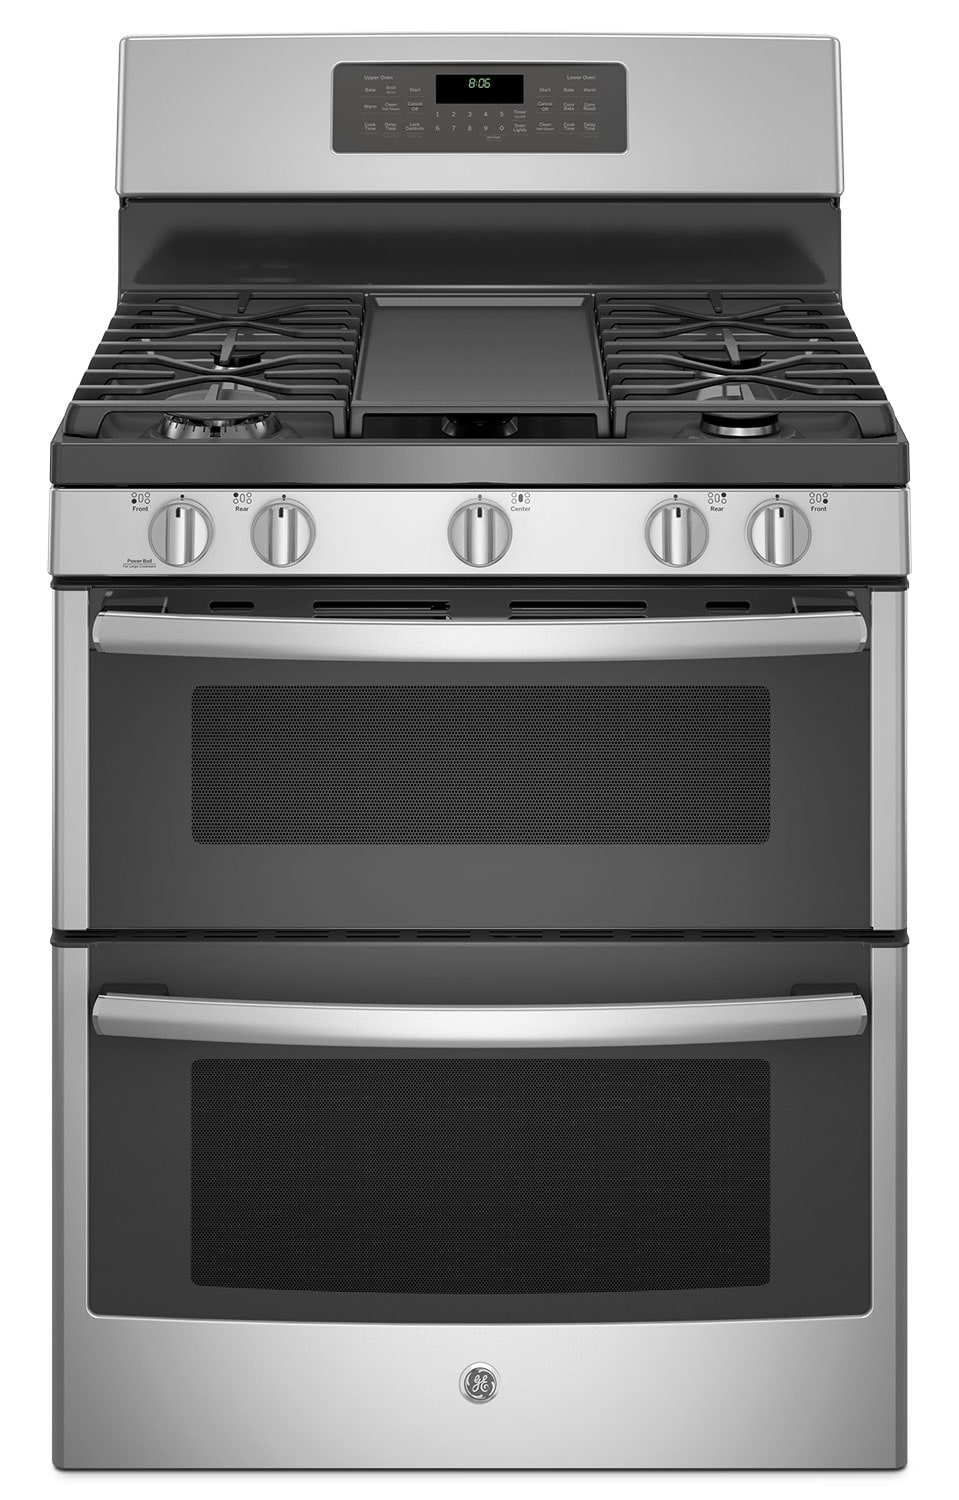 Cooking Products - GE 6.8 Cu. Ft. Freestanding Double Oven Gas Range – JCGB860SEJSS